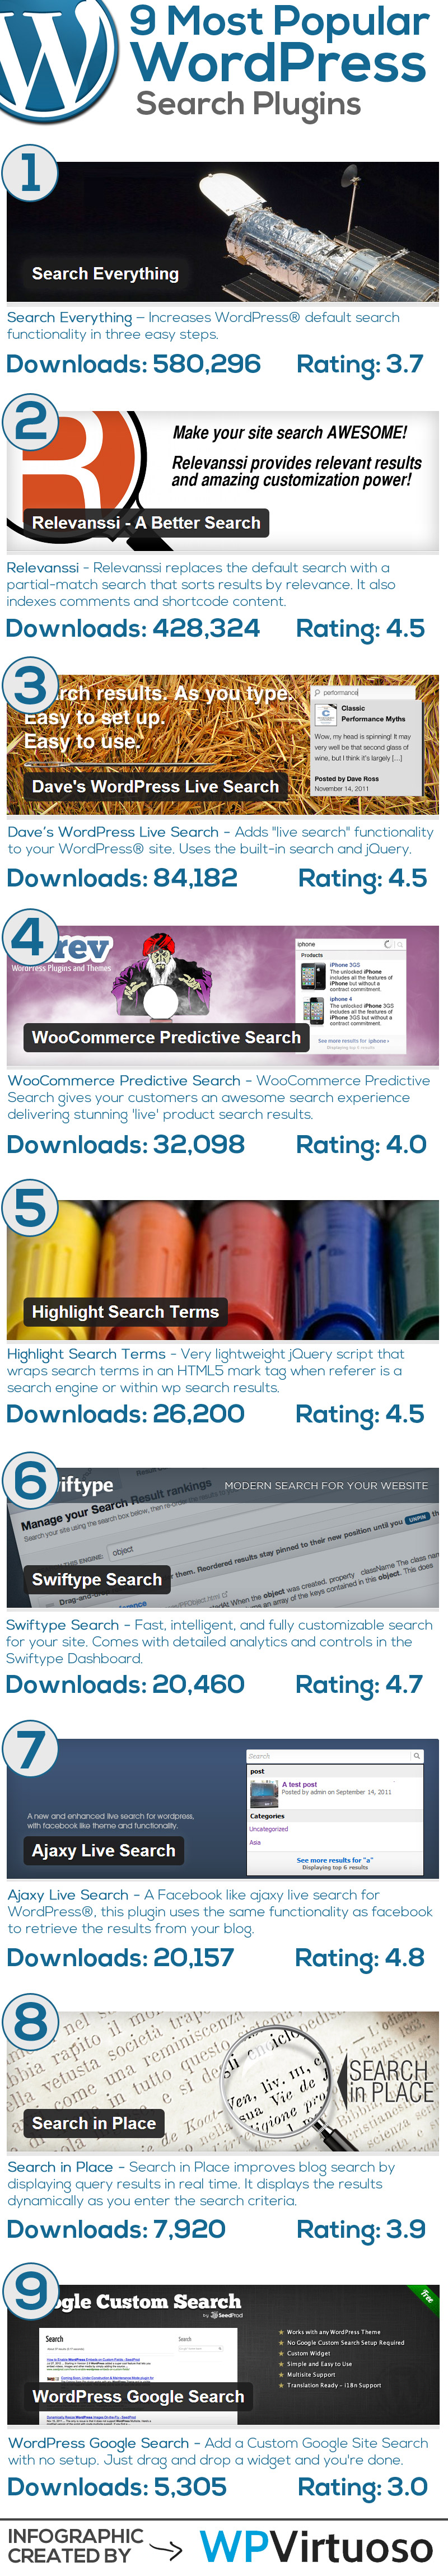 Best-Wordpress-Search-Plugins-Infographic